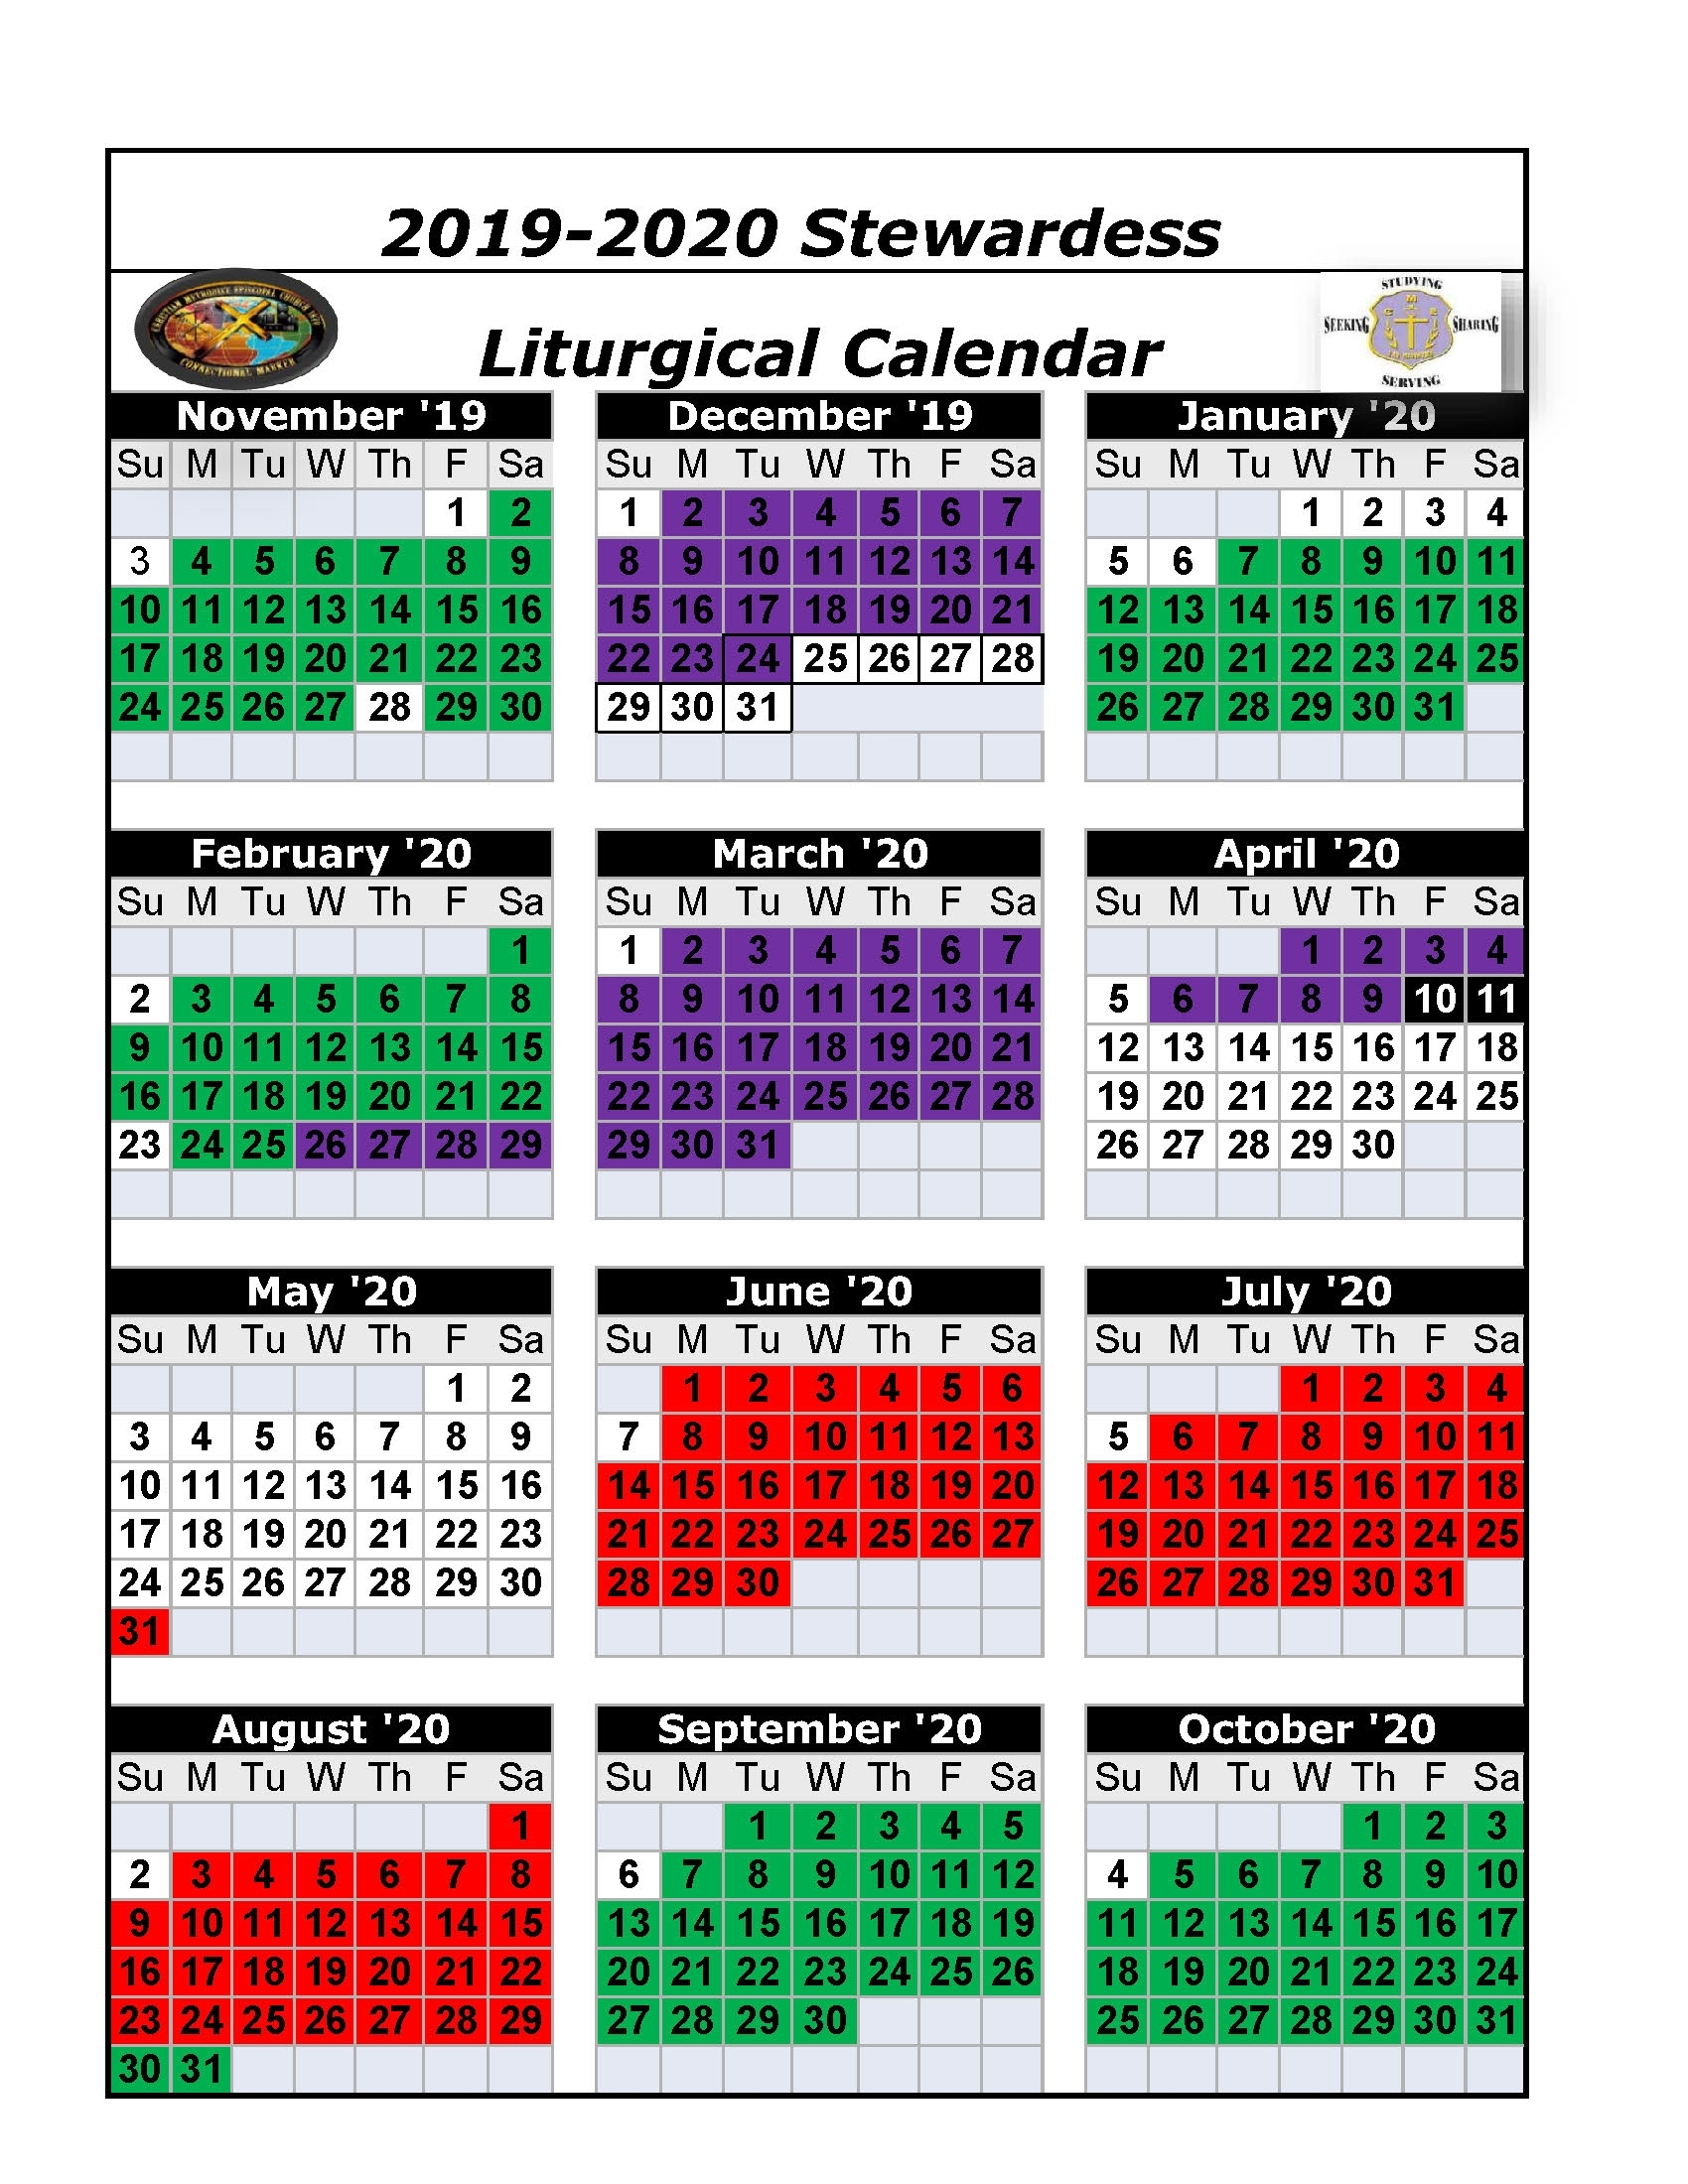 The Christian Methodist Episcopal Church in Downloadable Umc Liturgical Calendar 2020